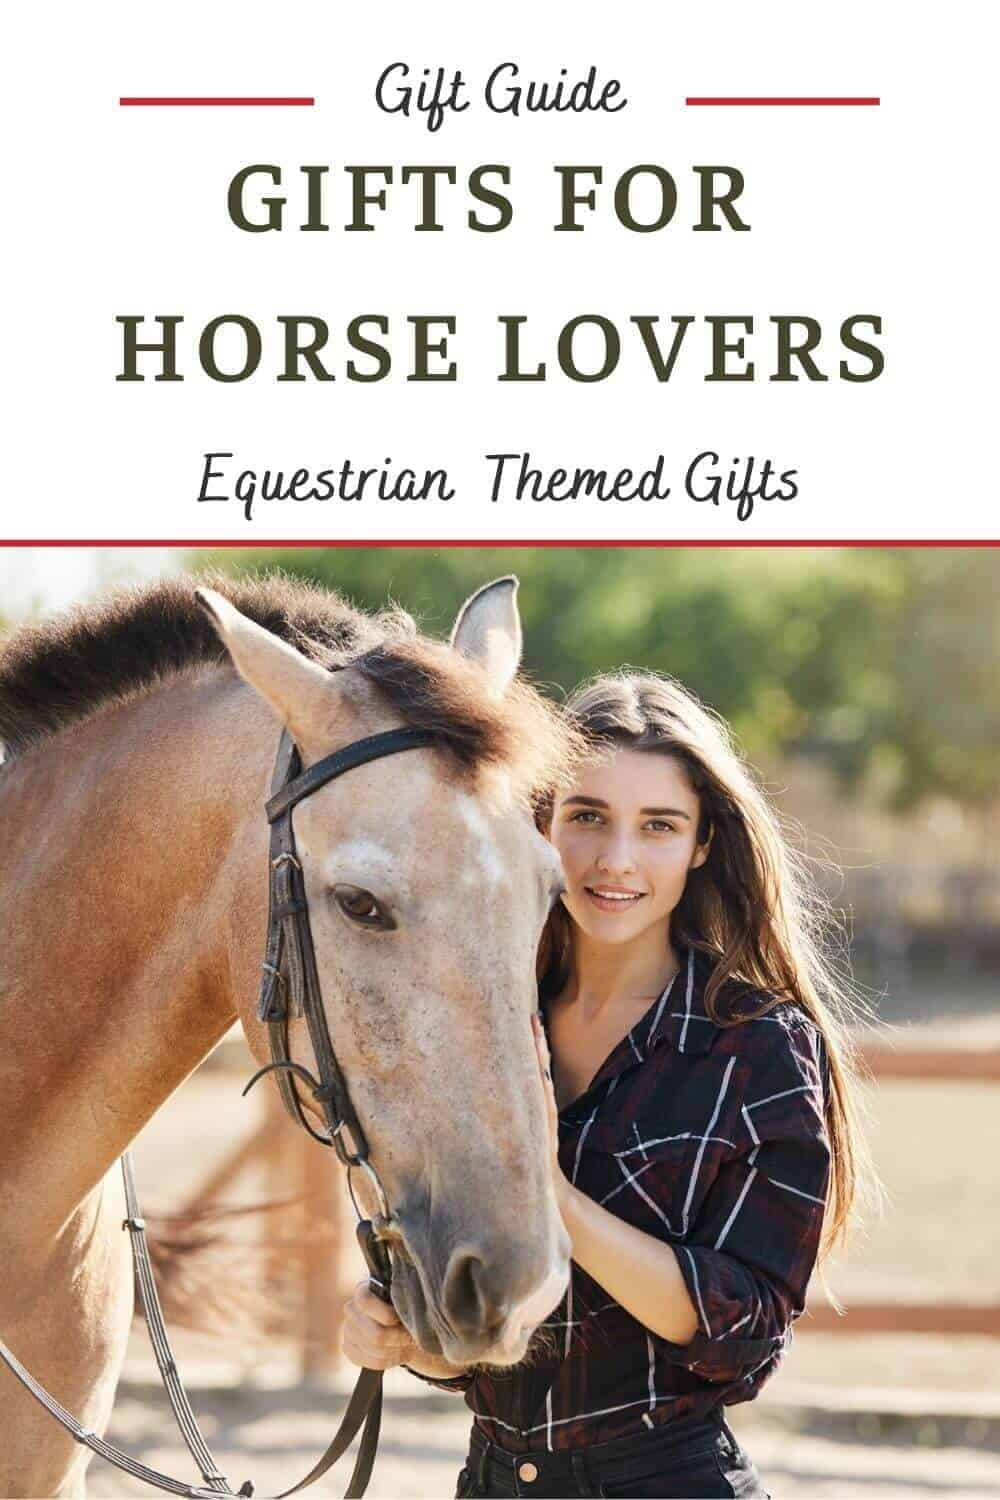 Gifts for Horse Lovers - Equestrian Themed Gifts